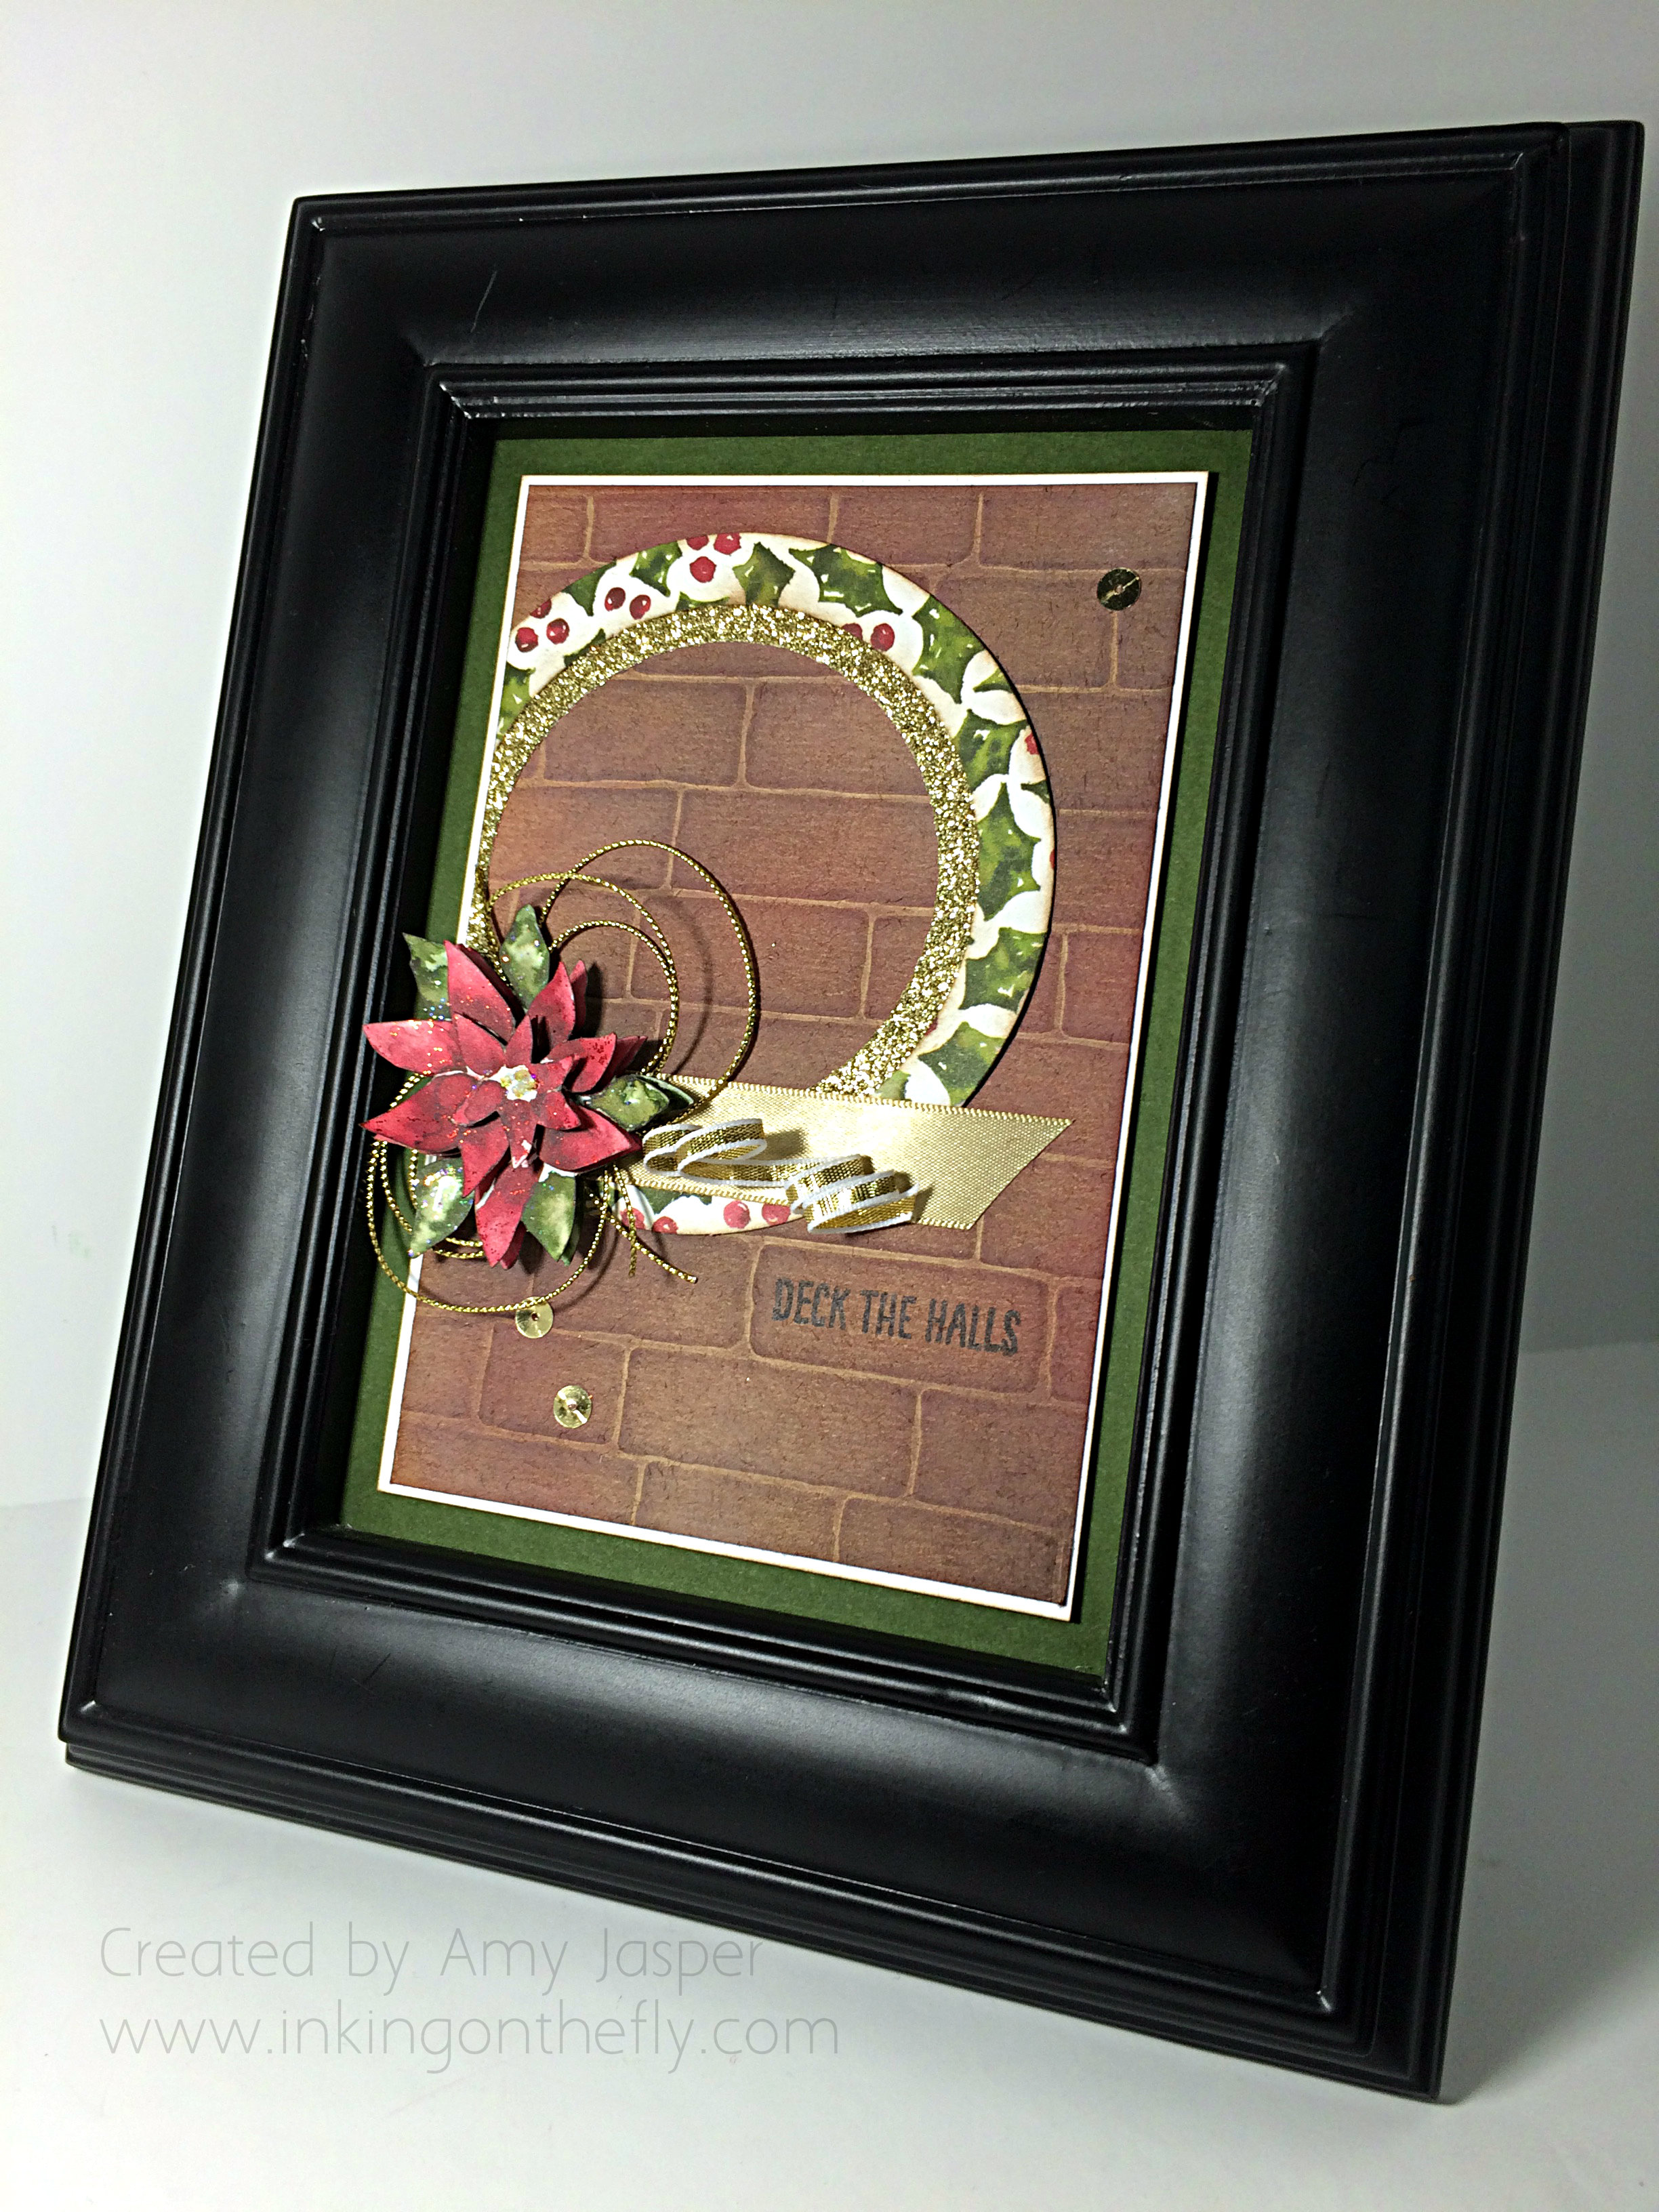 112 Deck the Halls Frame